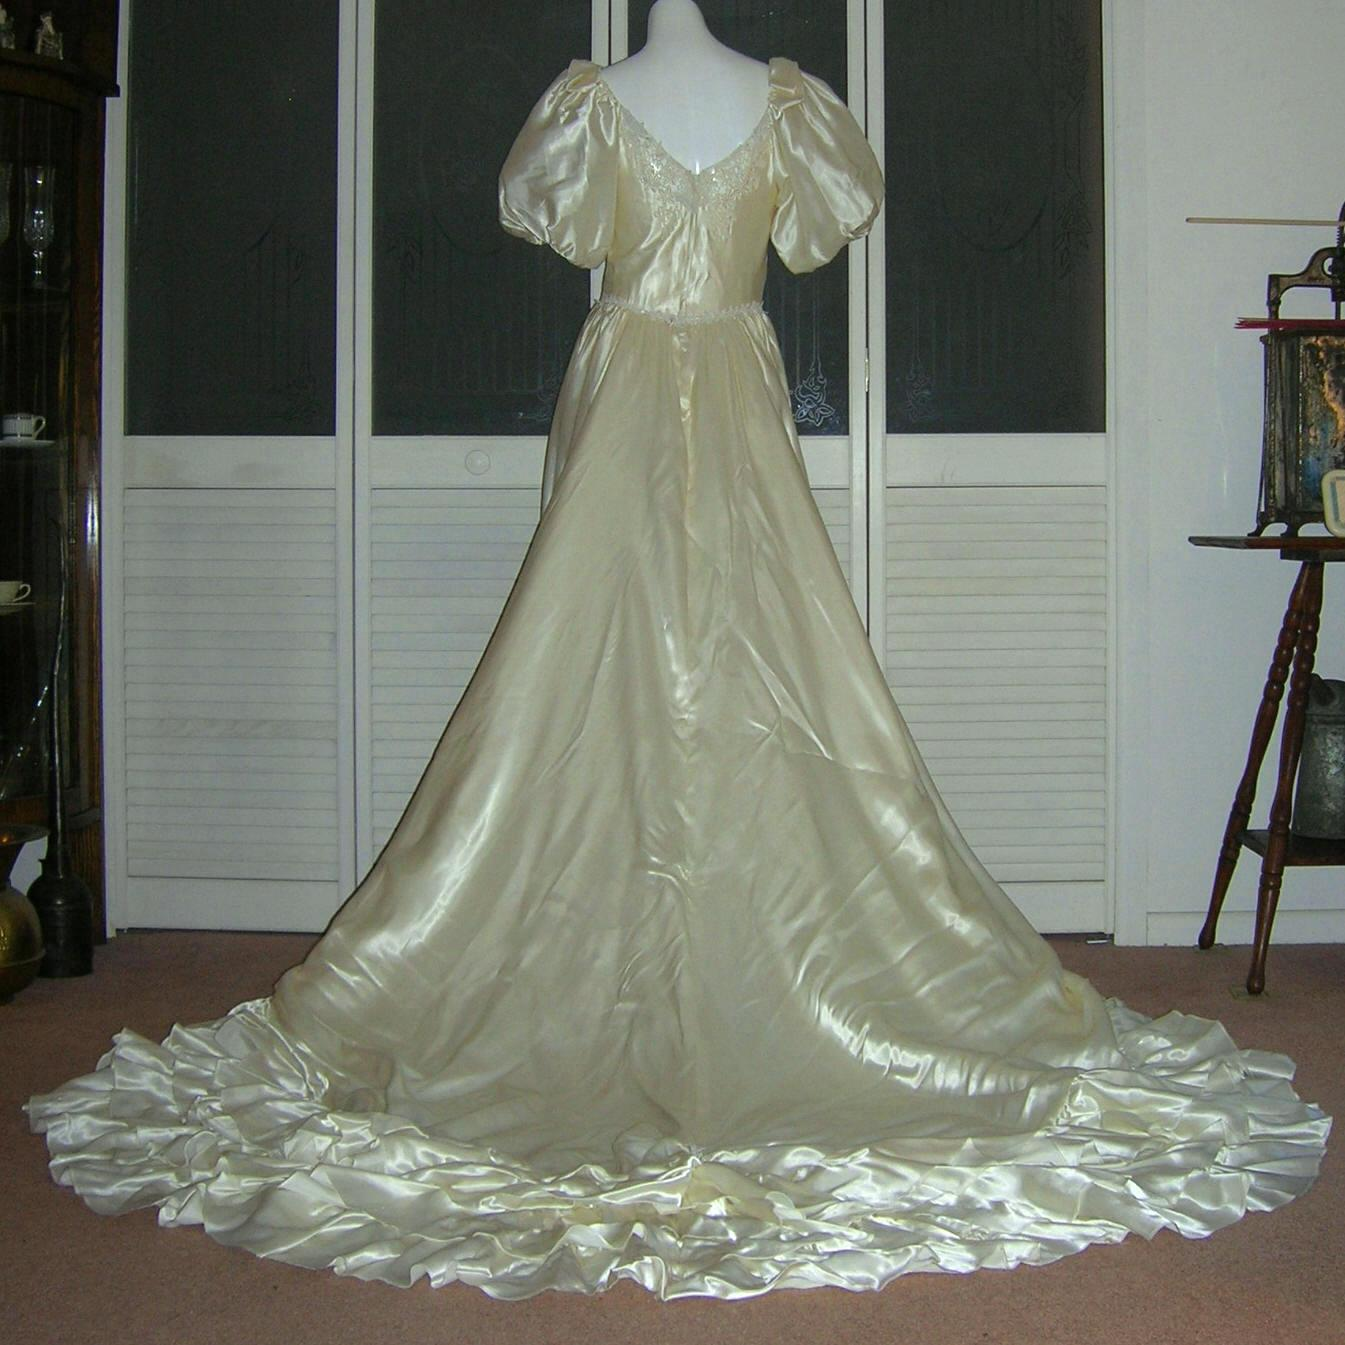 Vintage Liquid Satin Cinderella Bridal Gown Wedding Dress. Designer Wedding Dresses Images. Modern Zulu Traditional Wedding Dresses. Couture Tulle Wedding Dresses. Wedding Dresses Strapless Lace Up Back. Lace Wedding Dress Strapless. Wedding Dress Style Choices. Country Wedding Dresses For Mom. Oscar De La Renta First Wedding Dress